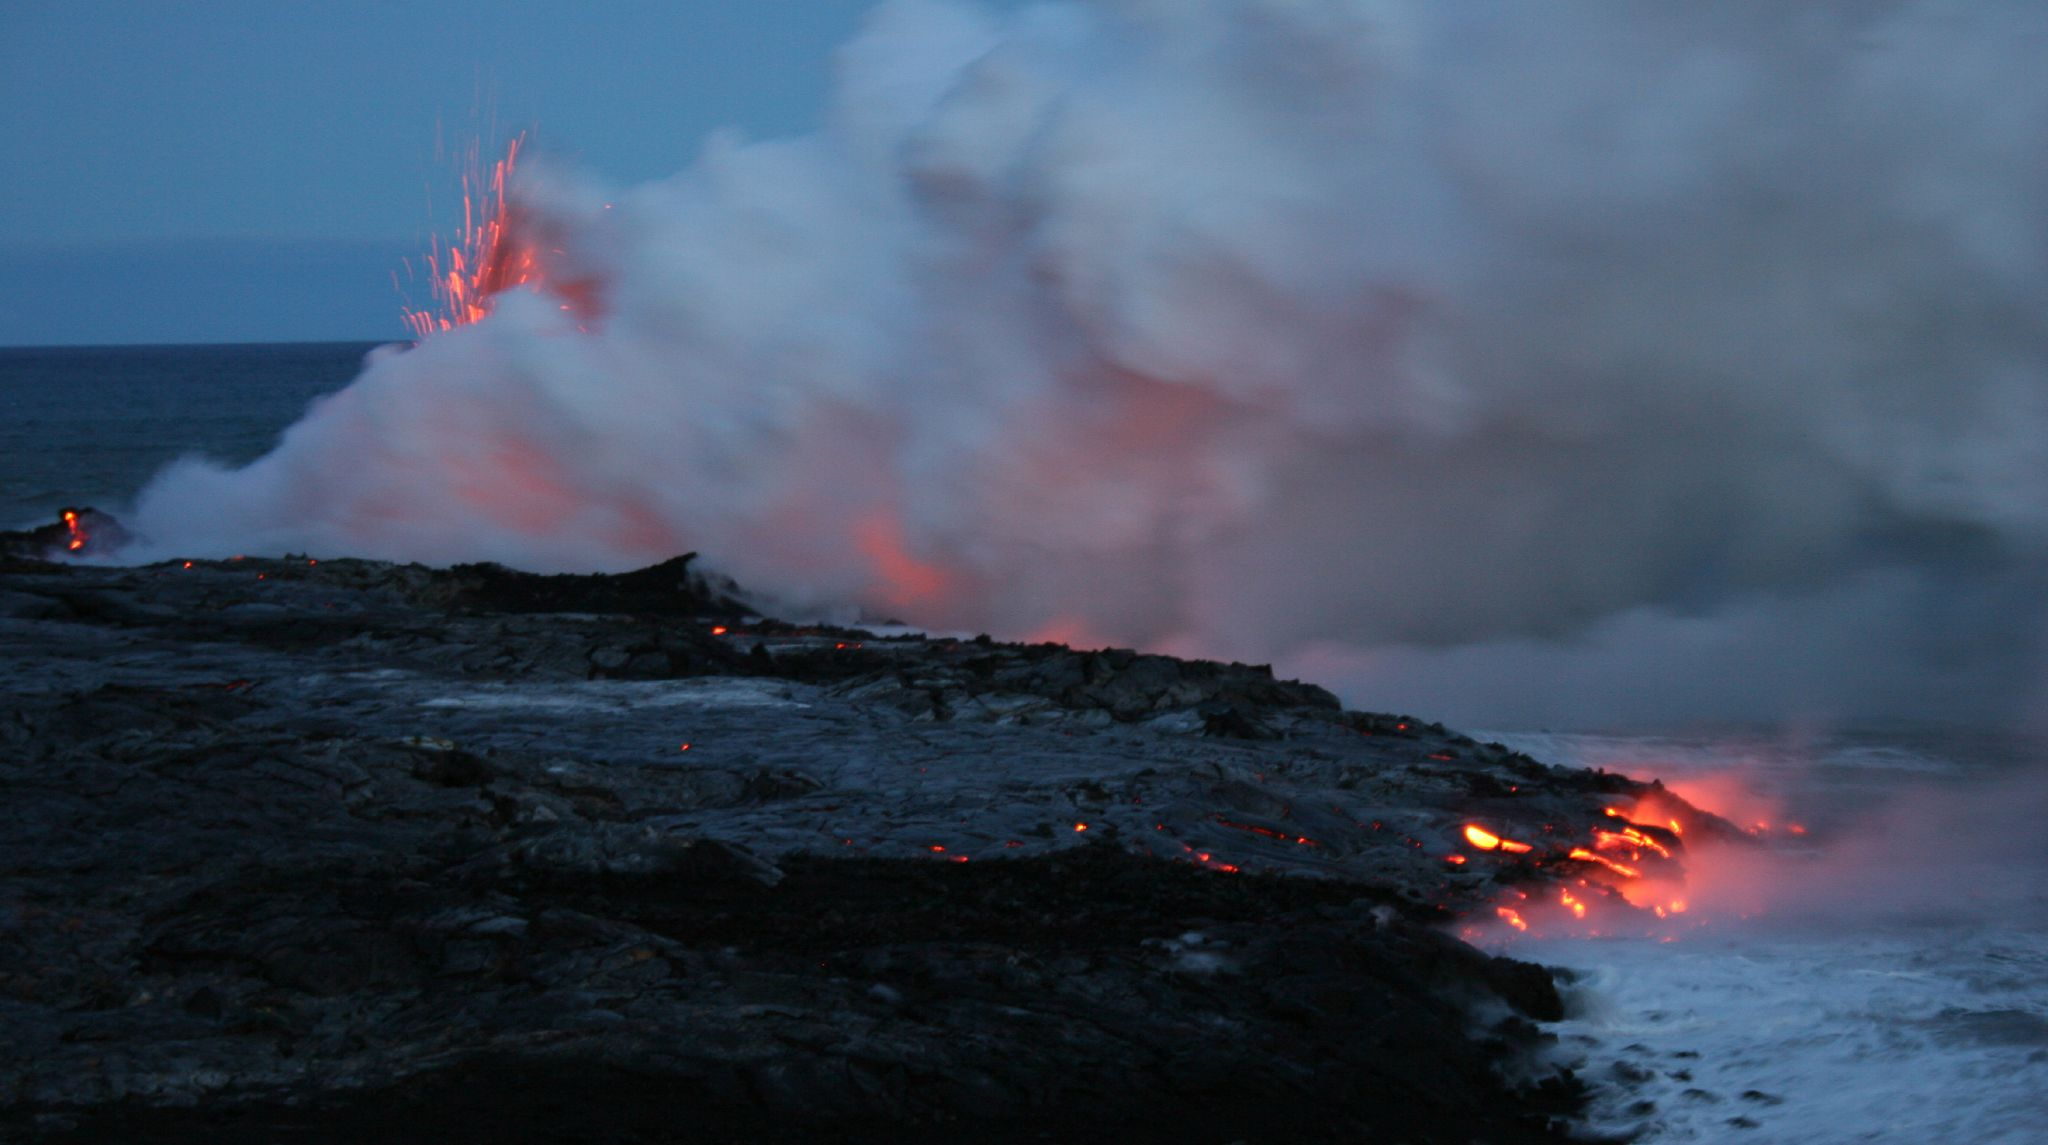 volcanoes volcano and red hot lava Download this stock image: puʻu ʻōʻō or puu oo volcano, volcanic eruption,  lava, red hot lava flow, hawaiʻi-volcanoes-nationalpark, usa, hawaii.